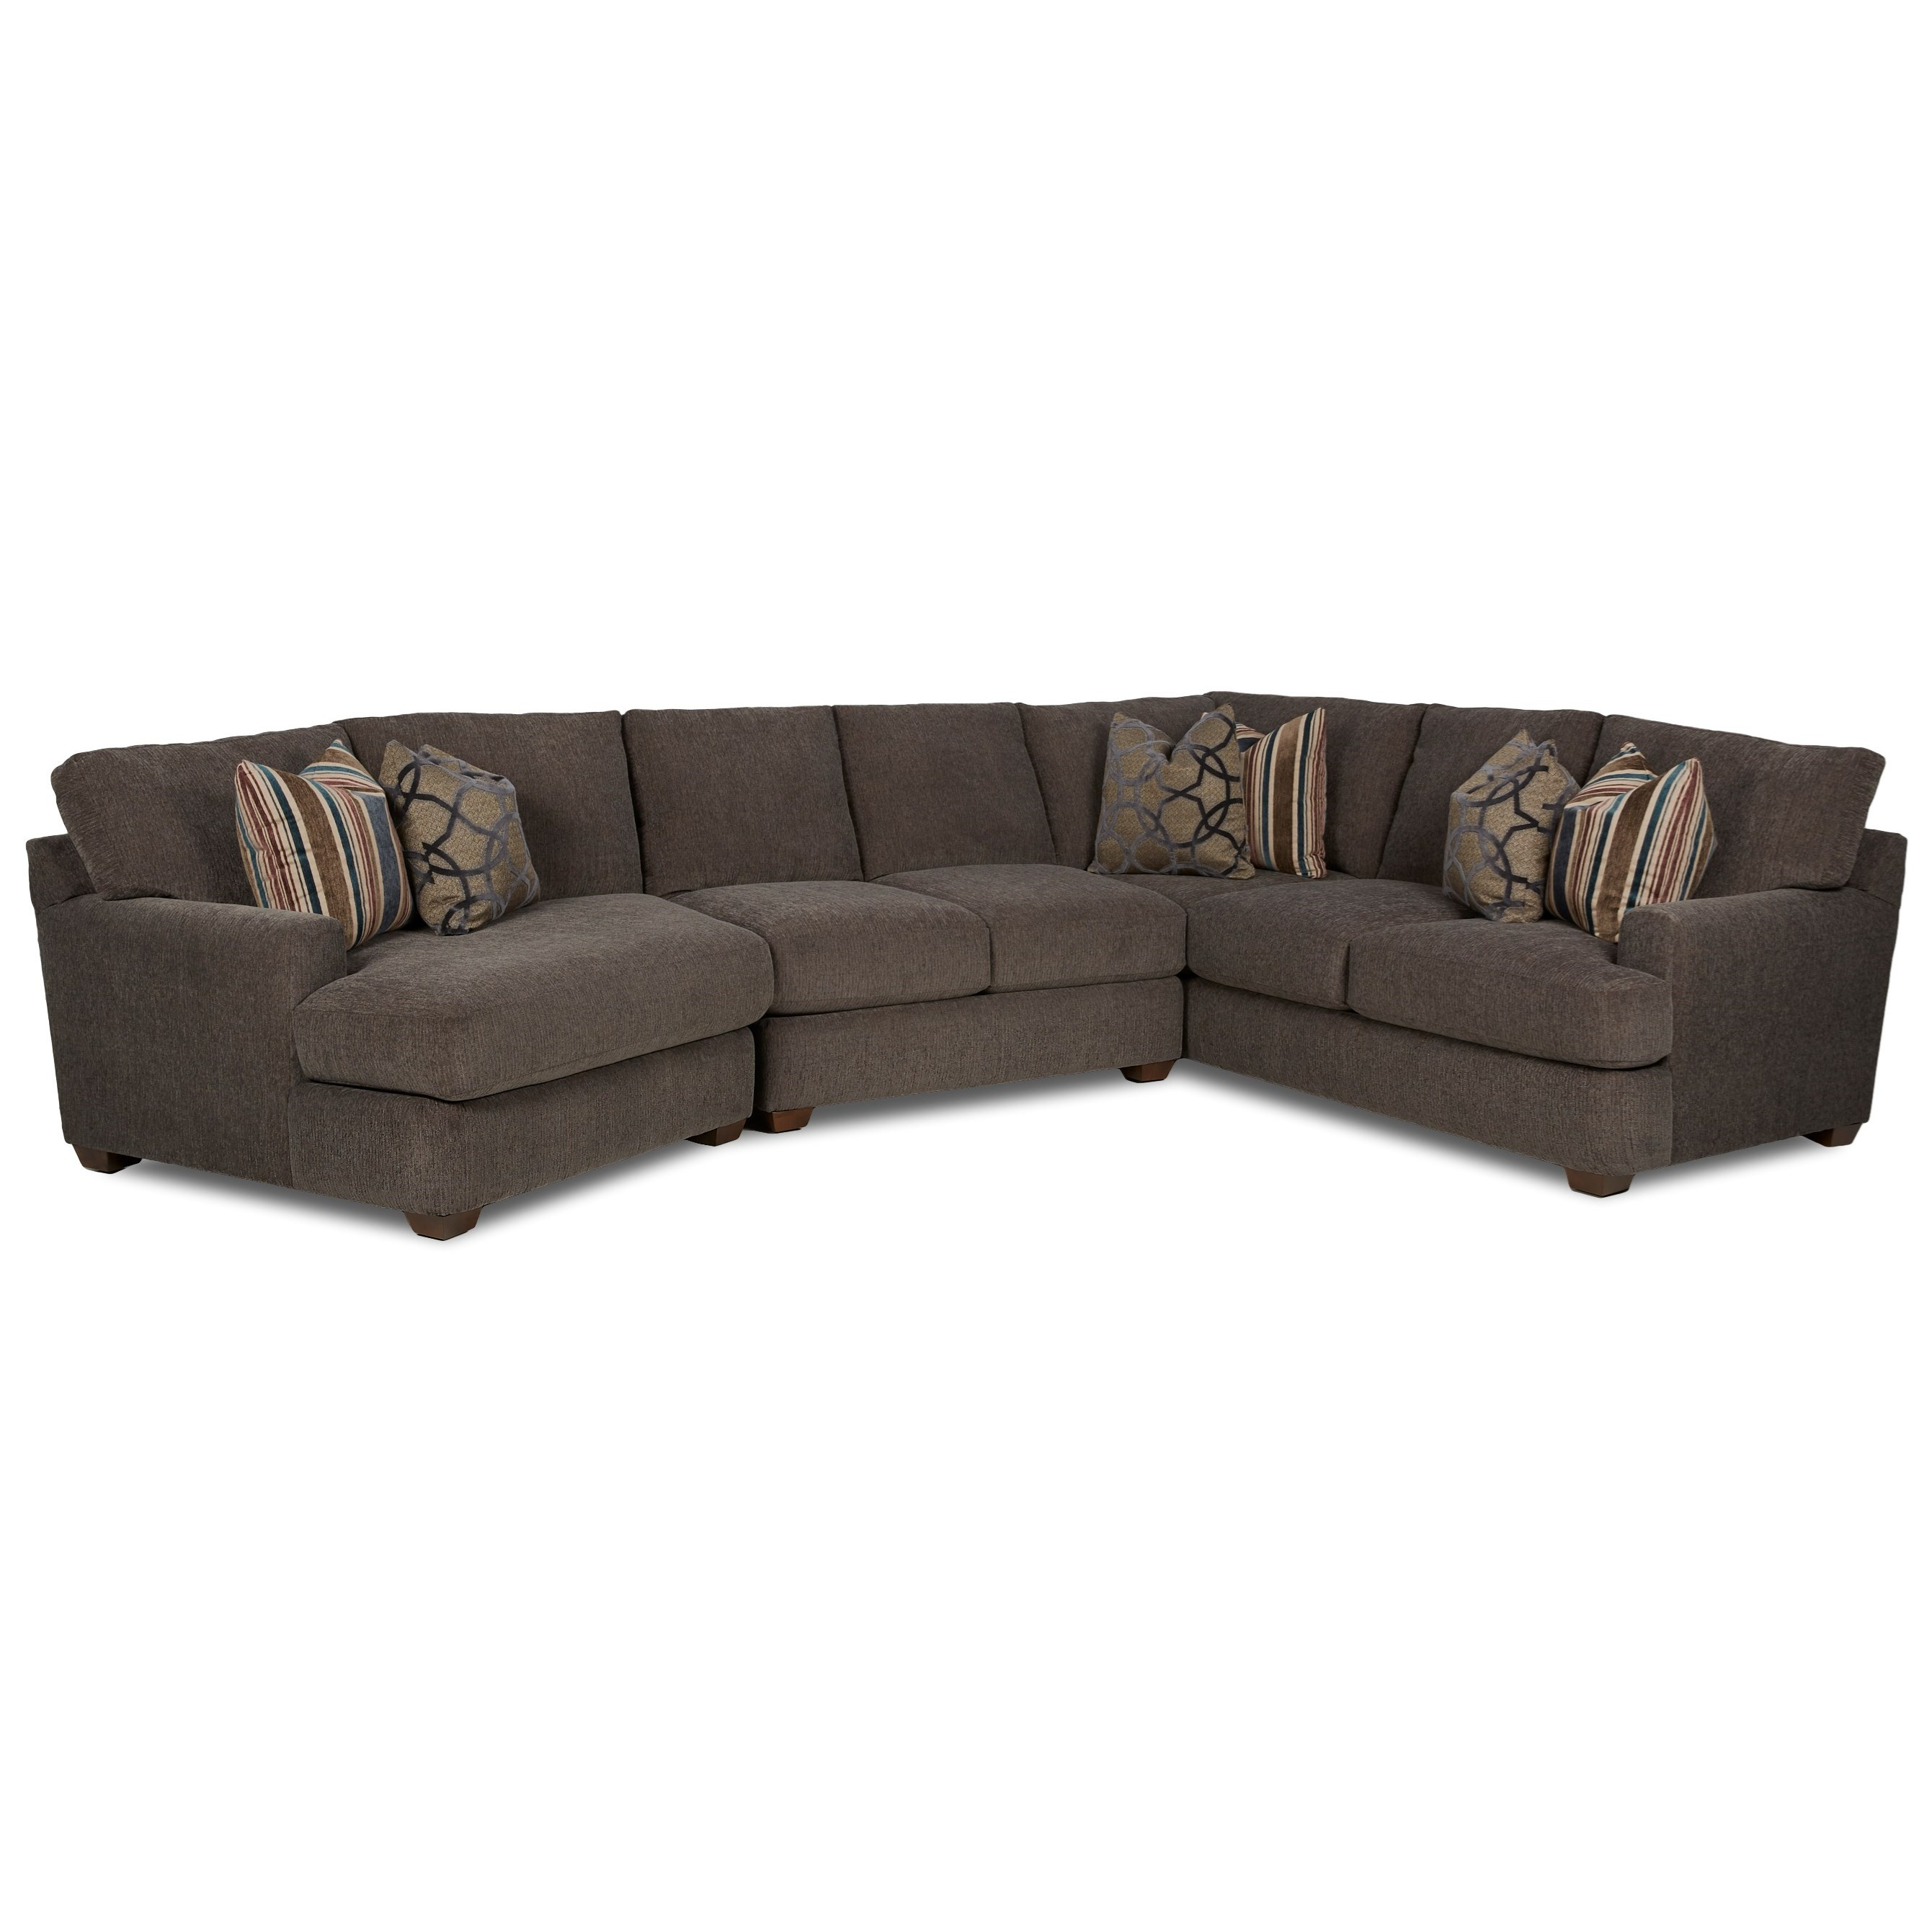 Haynes 3 Pc Sectional Sofa w/ LAF Cuddler by Klaussner at Johnny Janosik